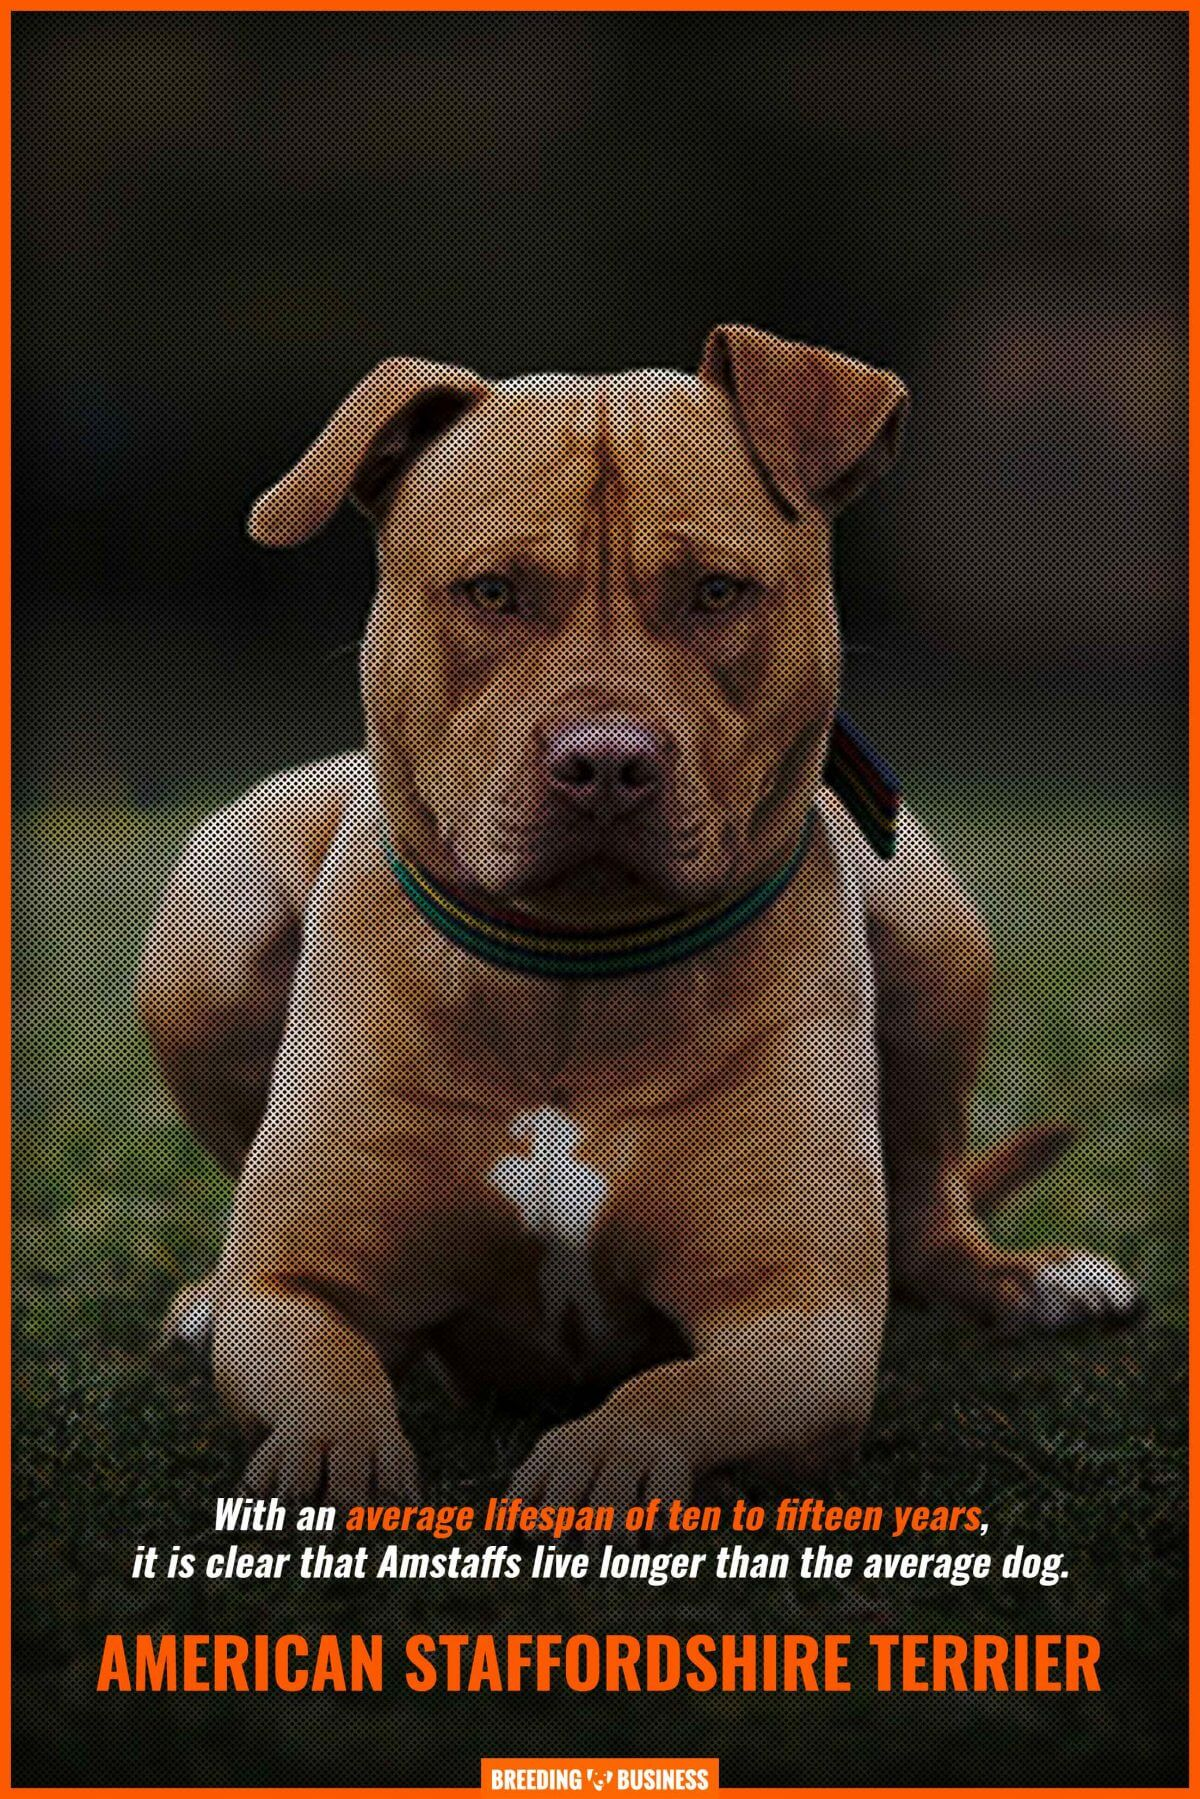 american staffordshire terriers (health and lifespan)